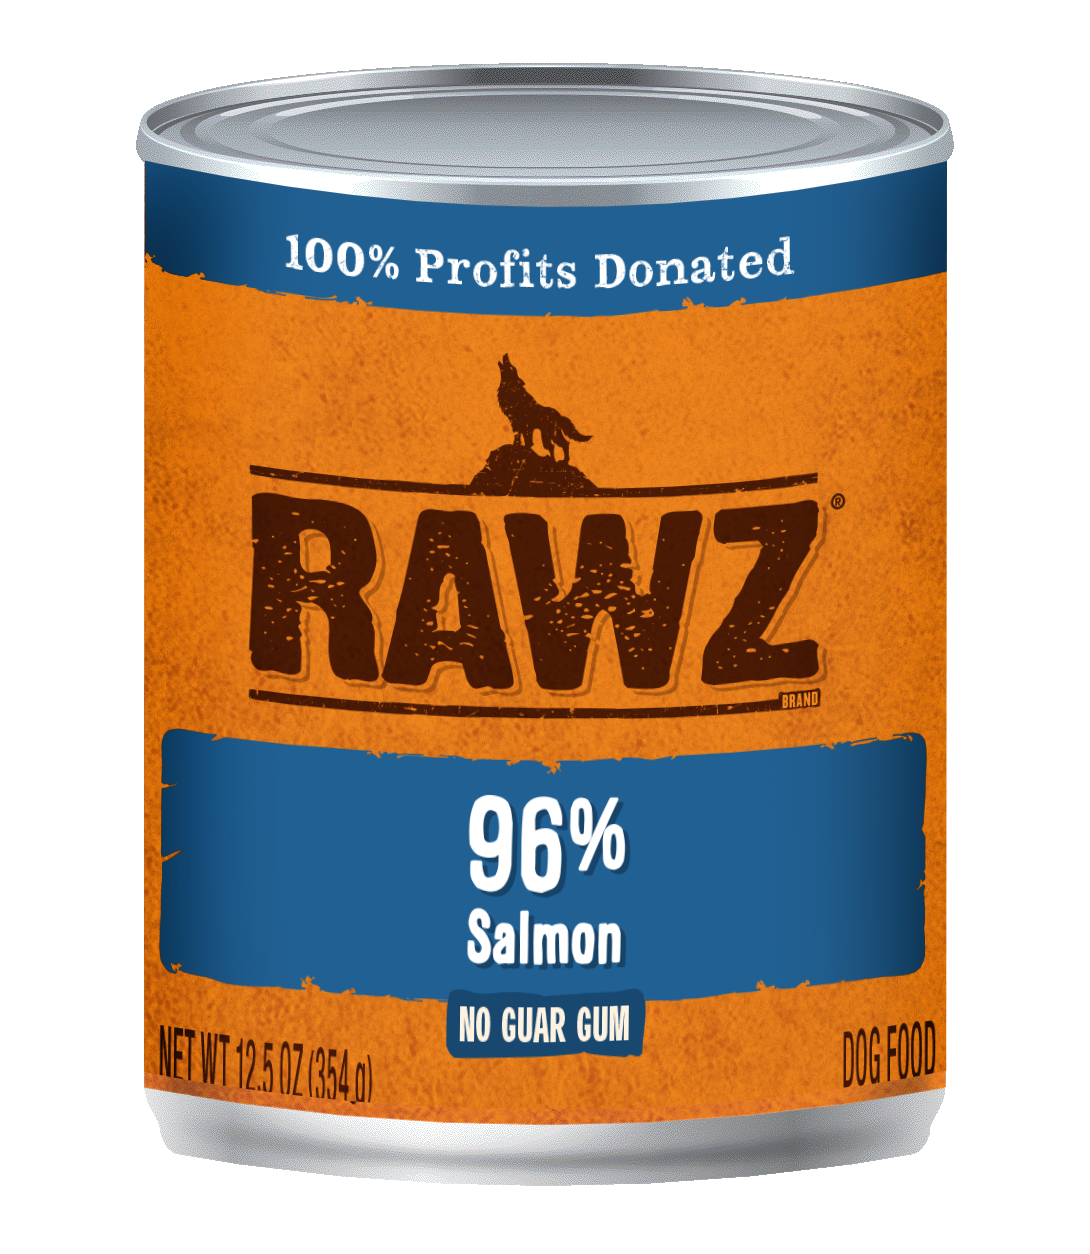 Salmon Recipe 96% Meat Gum Free Pâté Cans